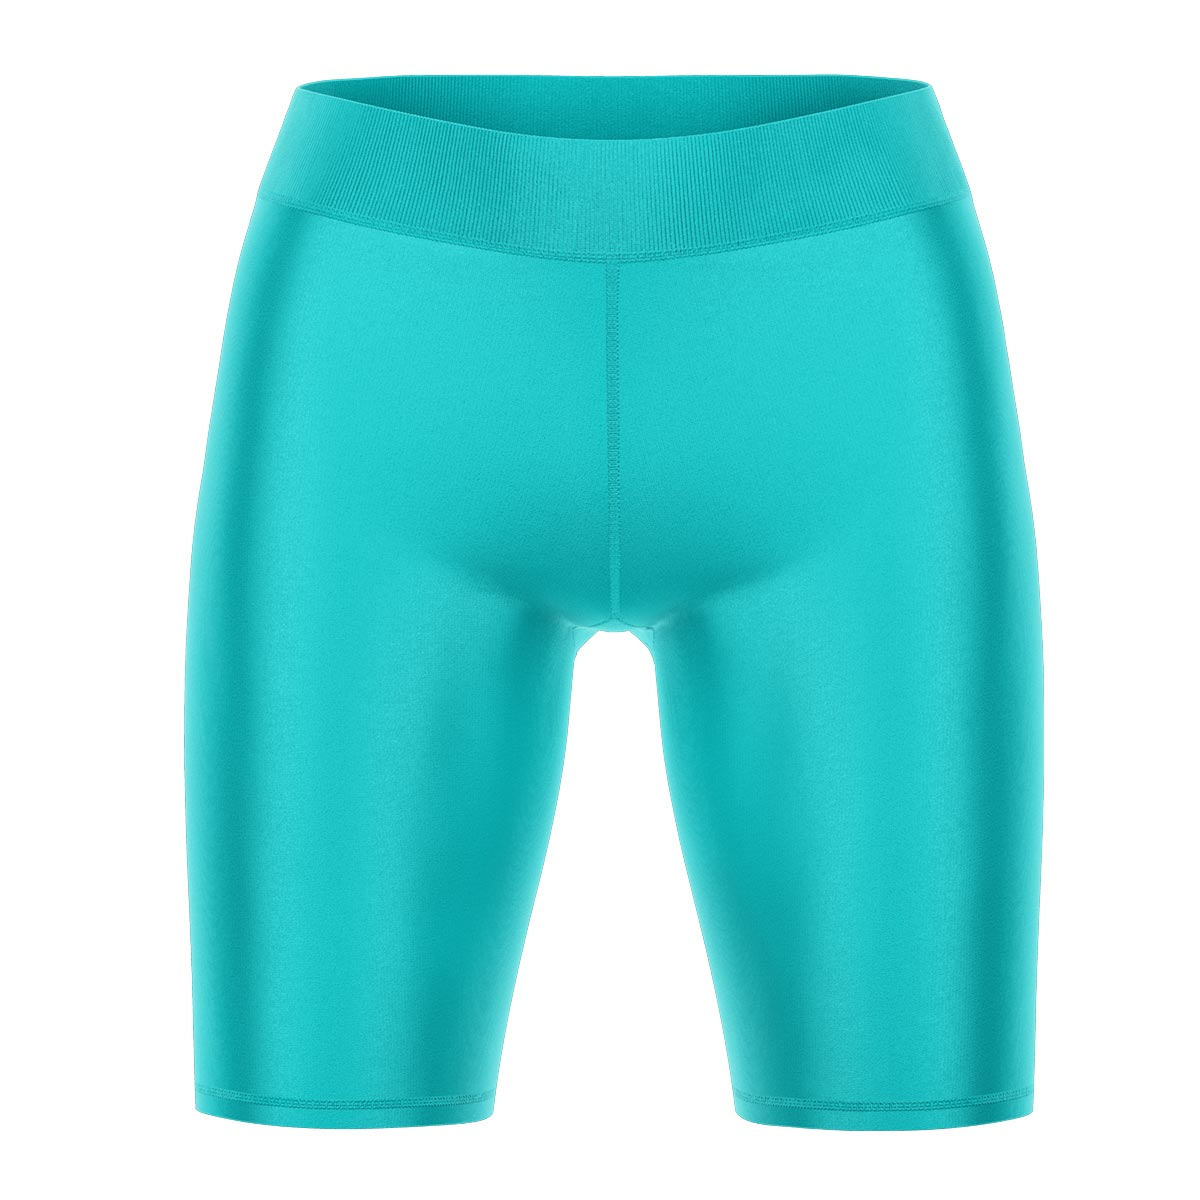 Light Turquoise Yoga Shorts